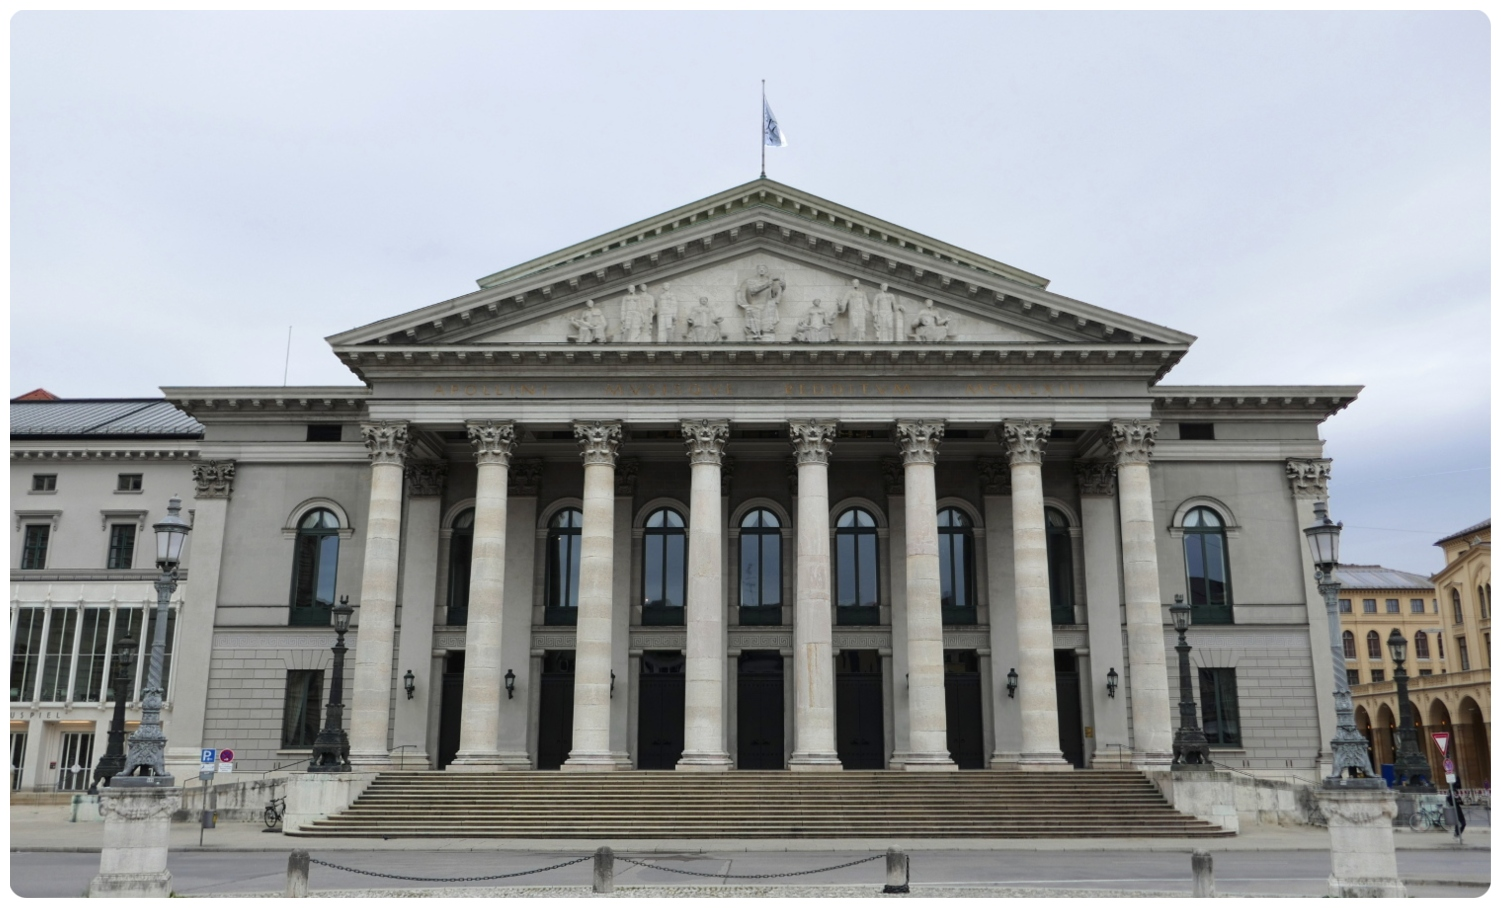 Opera House National Theater (Bayerisches Nationaltheater) in Munich, Germany.